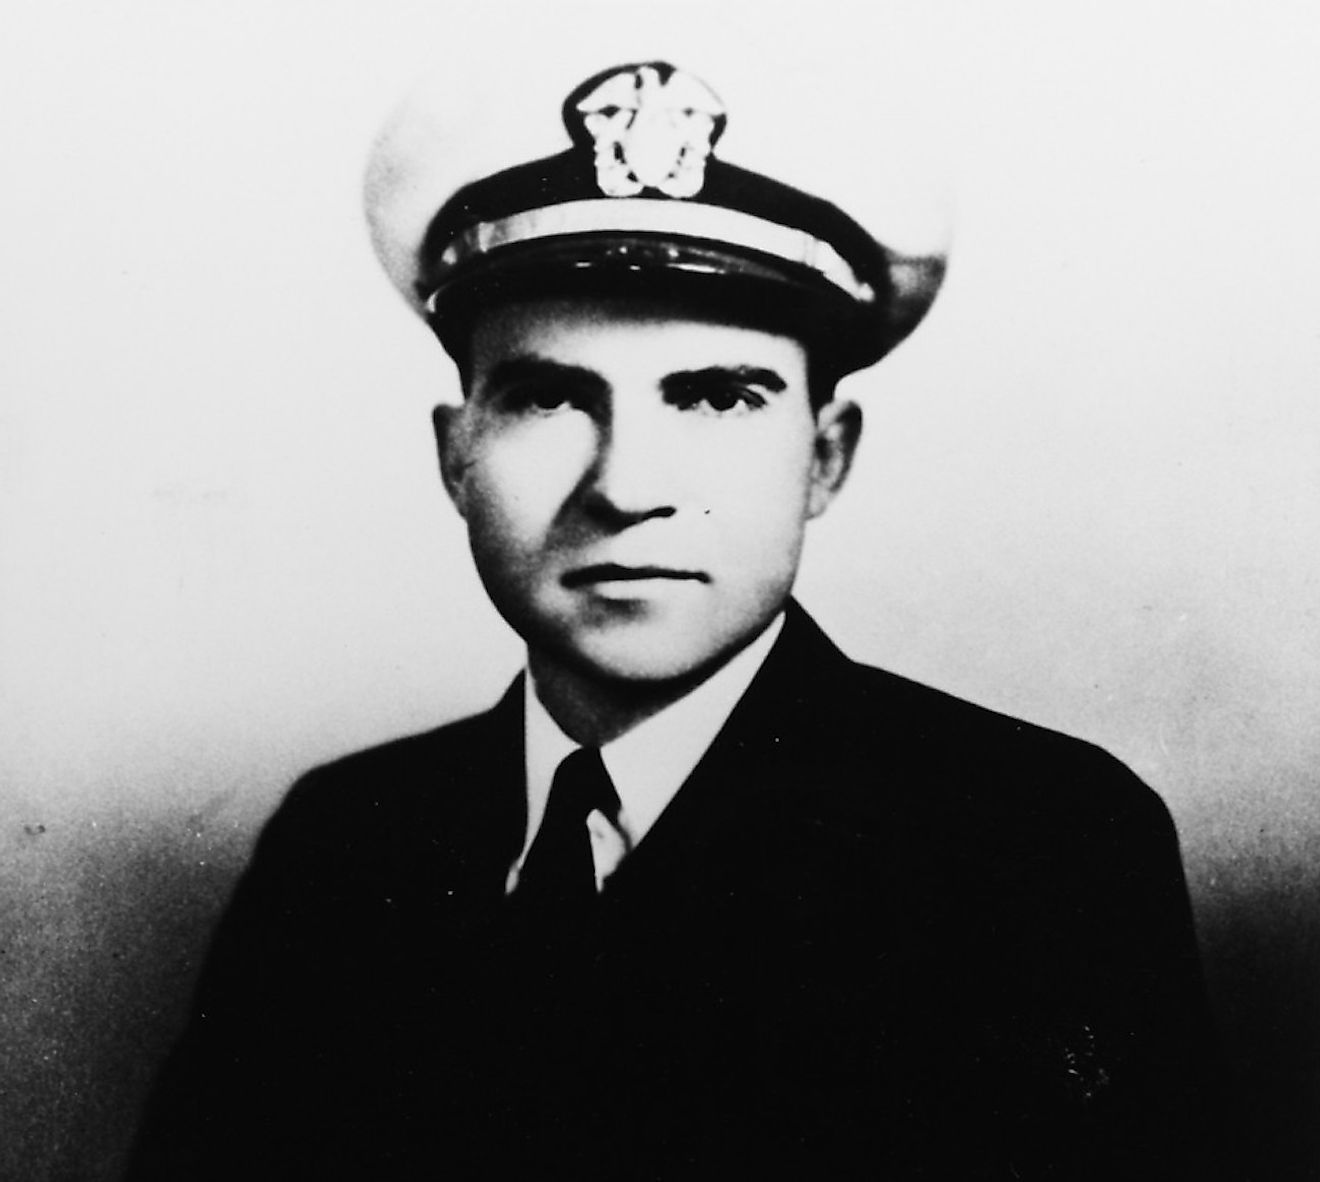 Lieutenant Commander Richard Milhous Nixon. Image credit: Naval History and Heritage Command / Public domain